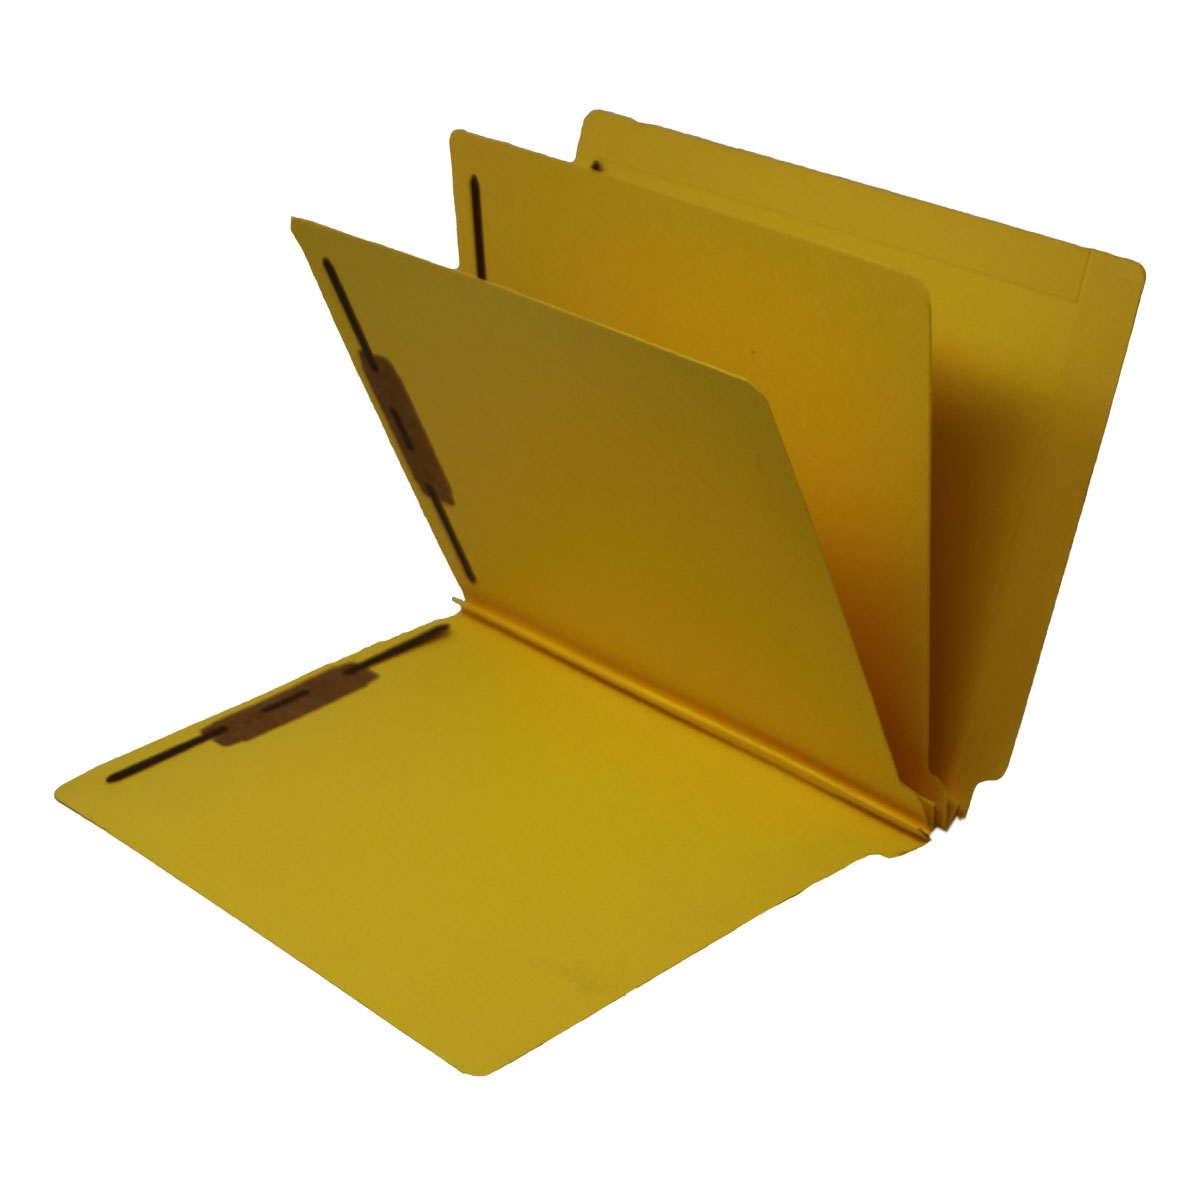 S-9240-YLW - 14 Pt. Yellow Classification Folders, Full Cut End Tab, Letter Size, 2 Dividers (Box of 15)